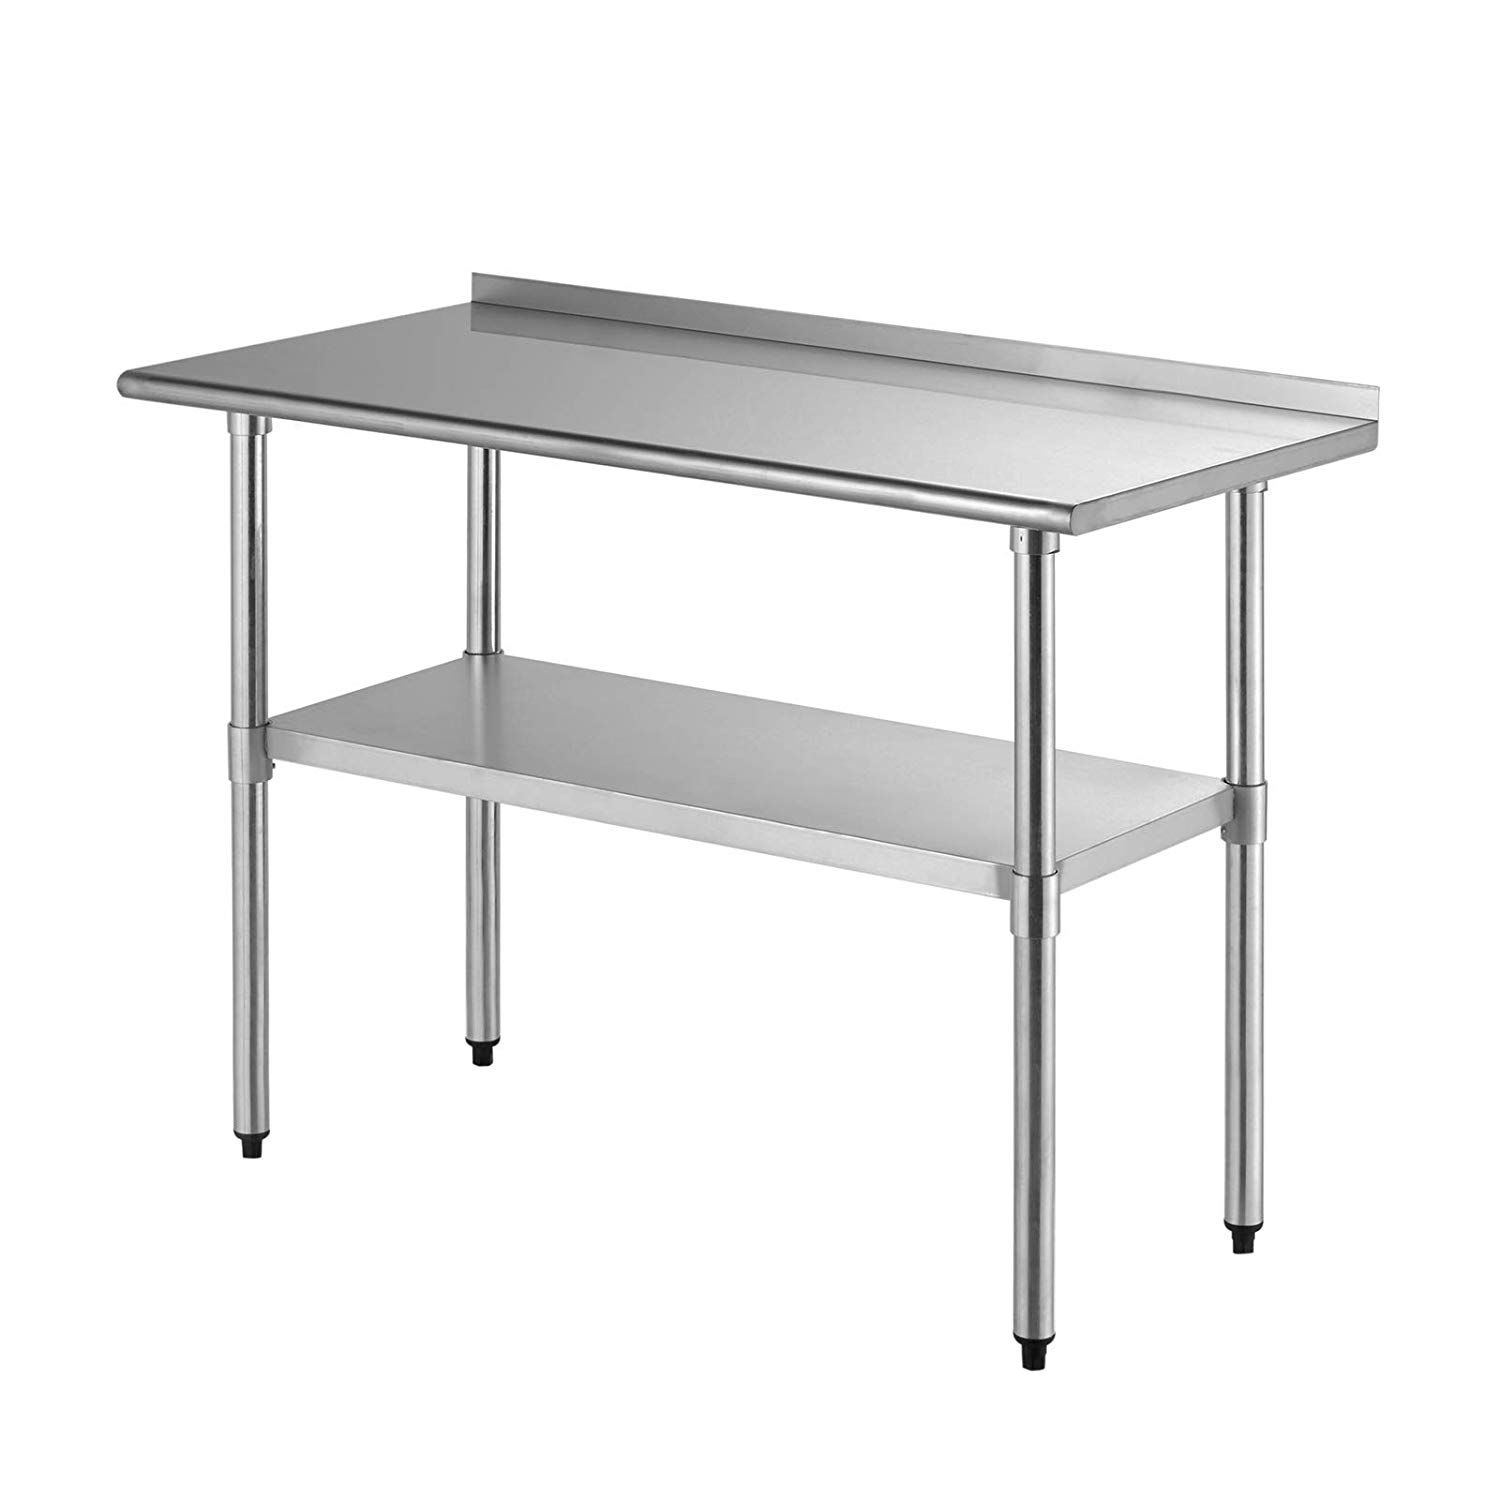 Amazon Com Suncoo Commercial Stainless Steel Work Table Food Grade Kitchen Prep Workbench Metal Resta Stainless Steel Work Table Metal Restaurant Coffee Table